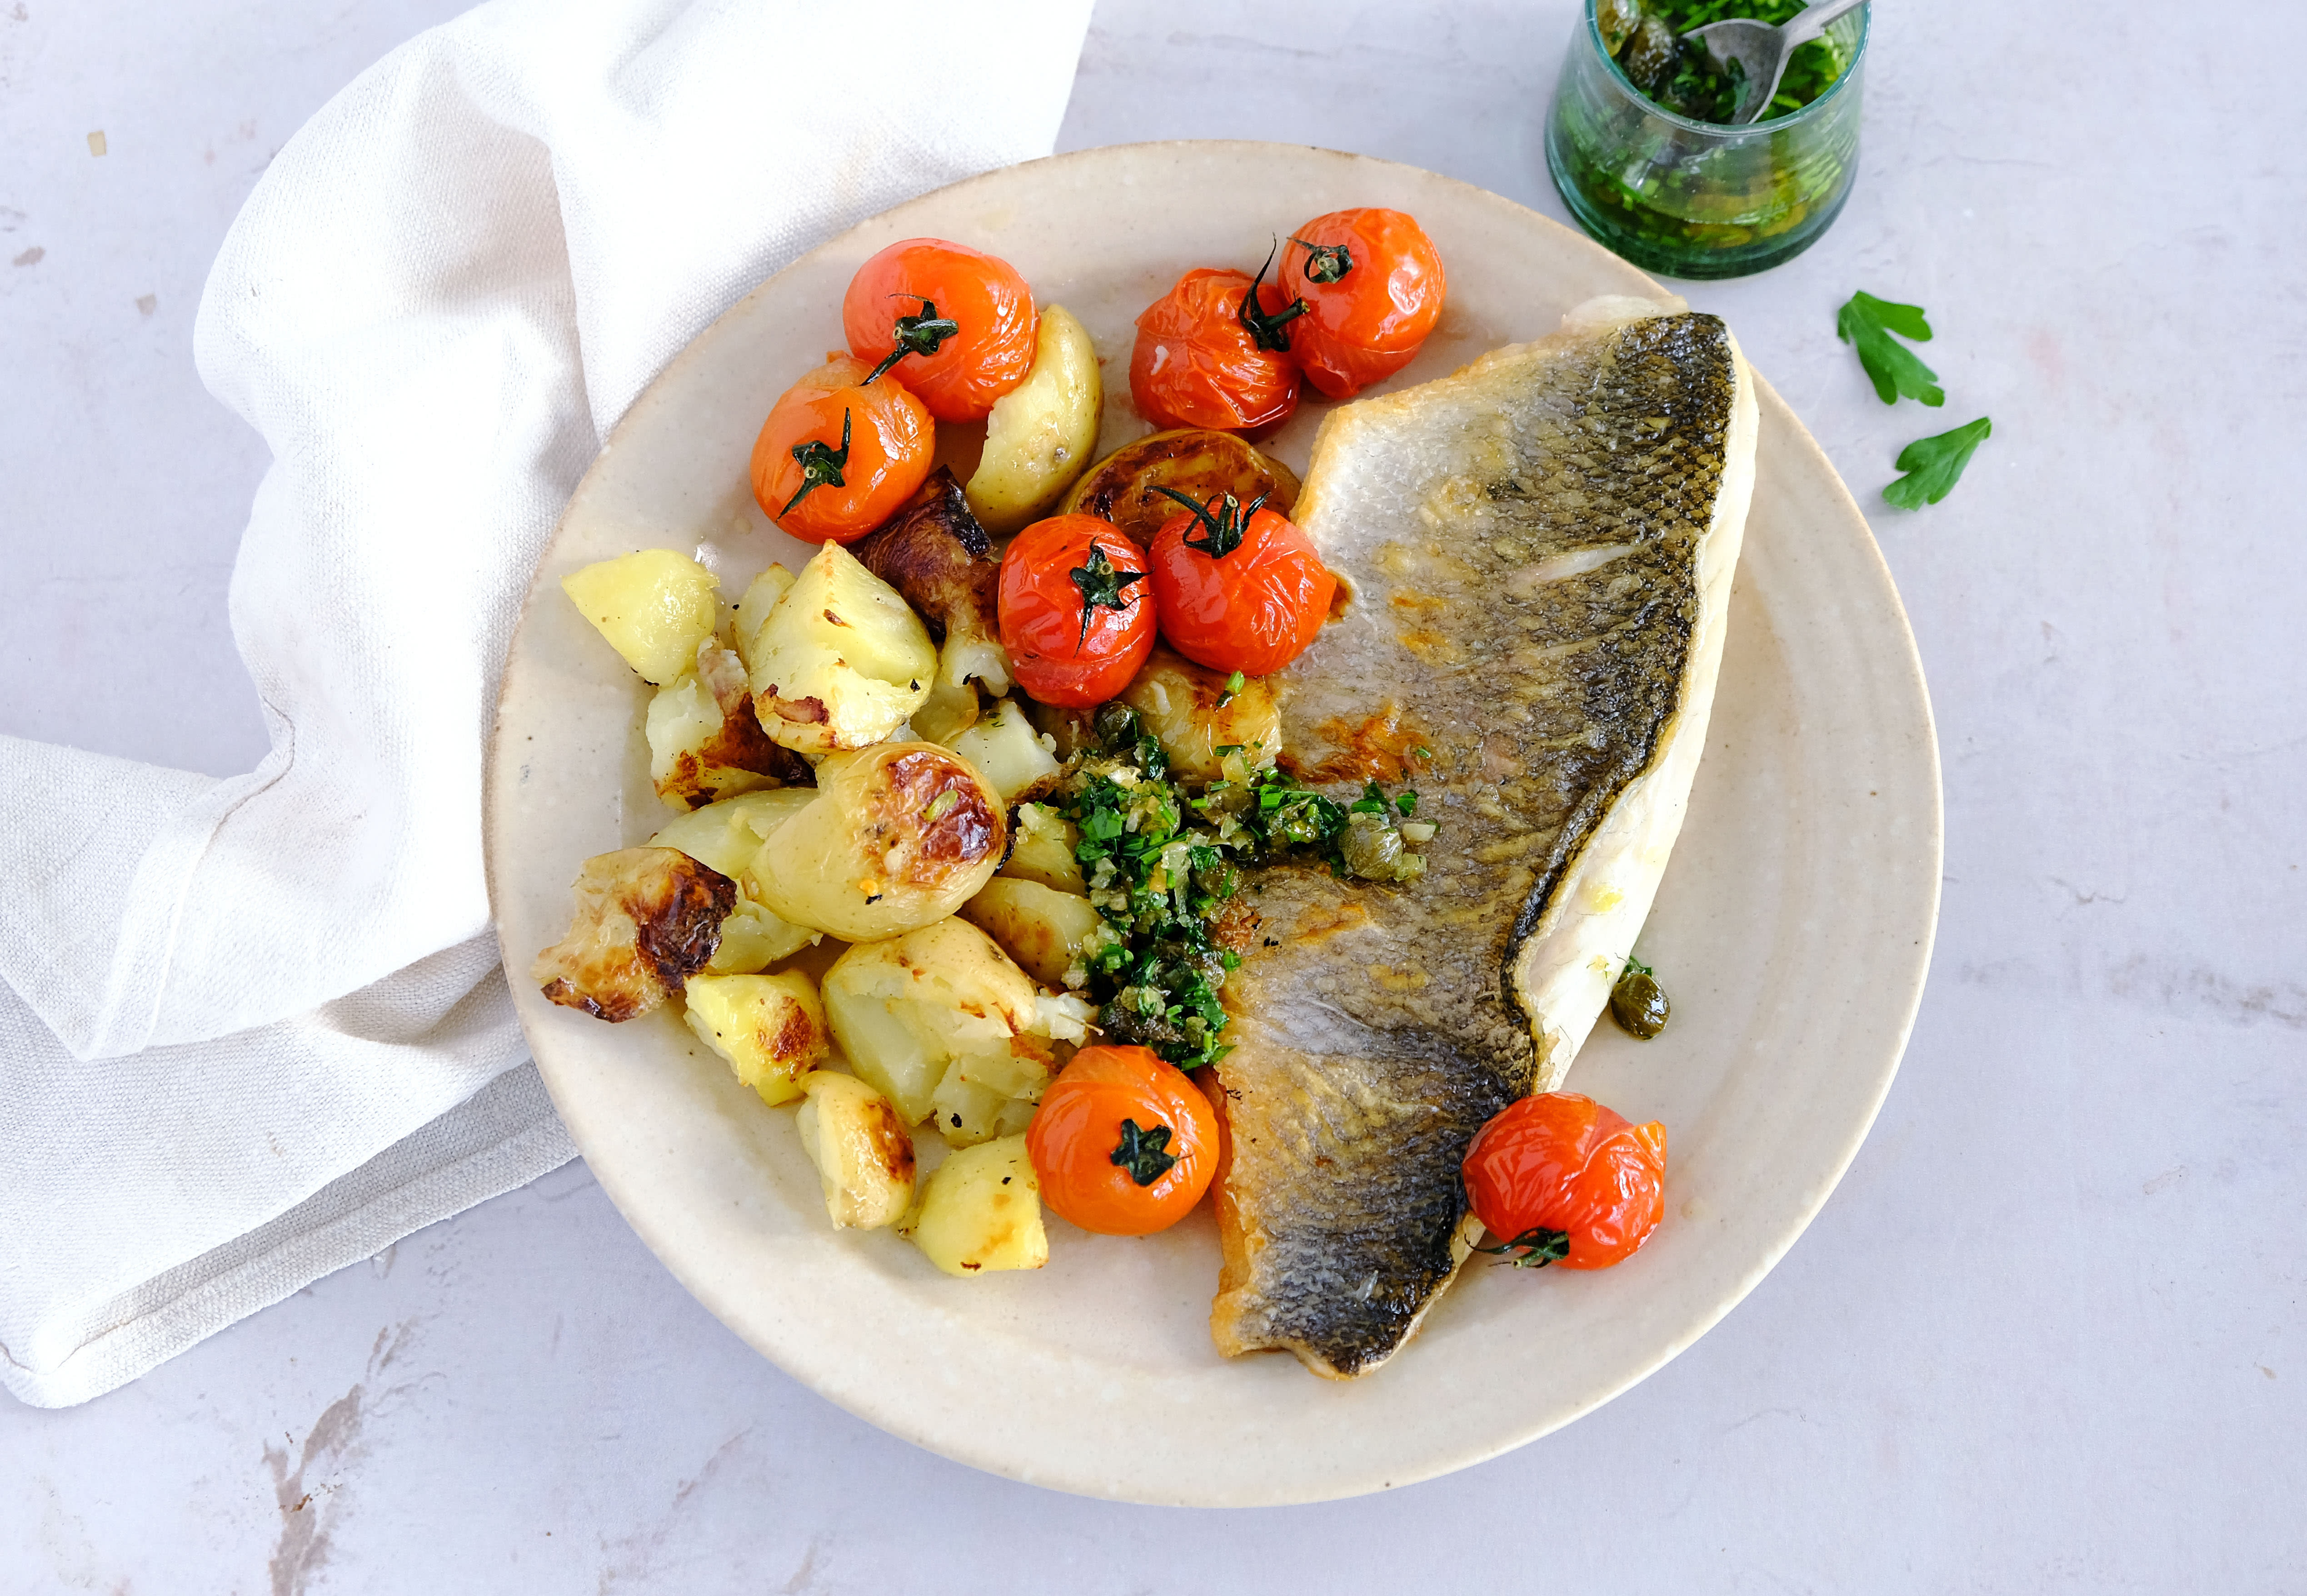 Sea Bass, Garlic Butter and Crushed Potatoes with Roasted Cherry Tomatoes